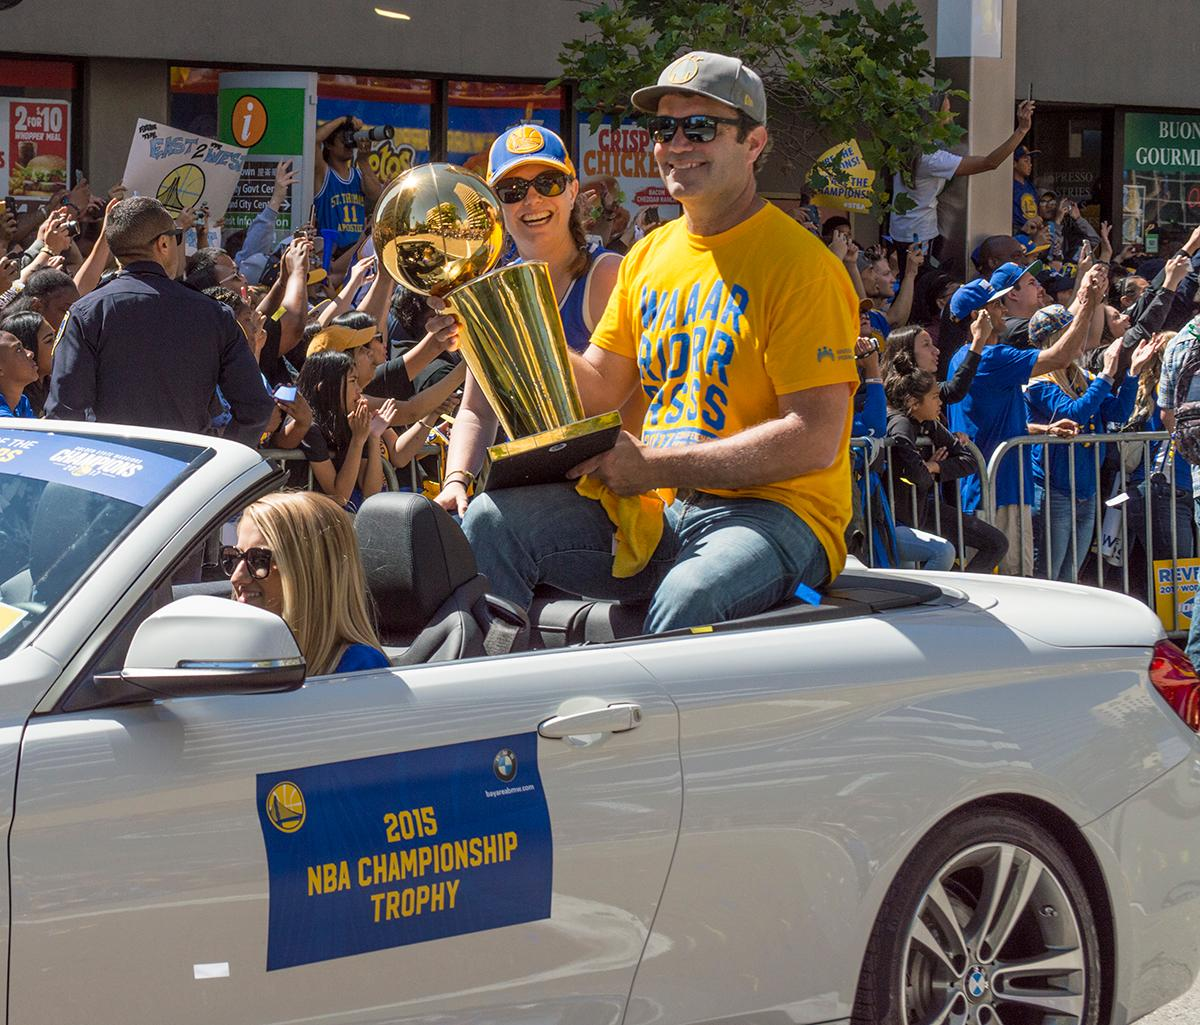 In a procession of all five NBA Championship trophies earned by the Golden State Warriors, the 2015 trophy follows. Photo by Emily Gonzalez, Oregon News Lab.